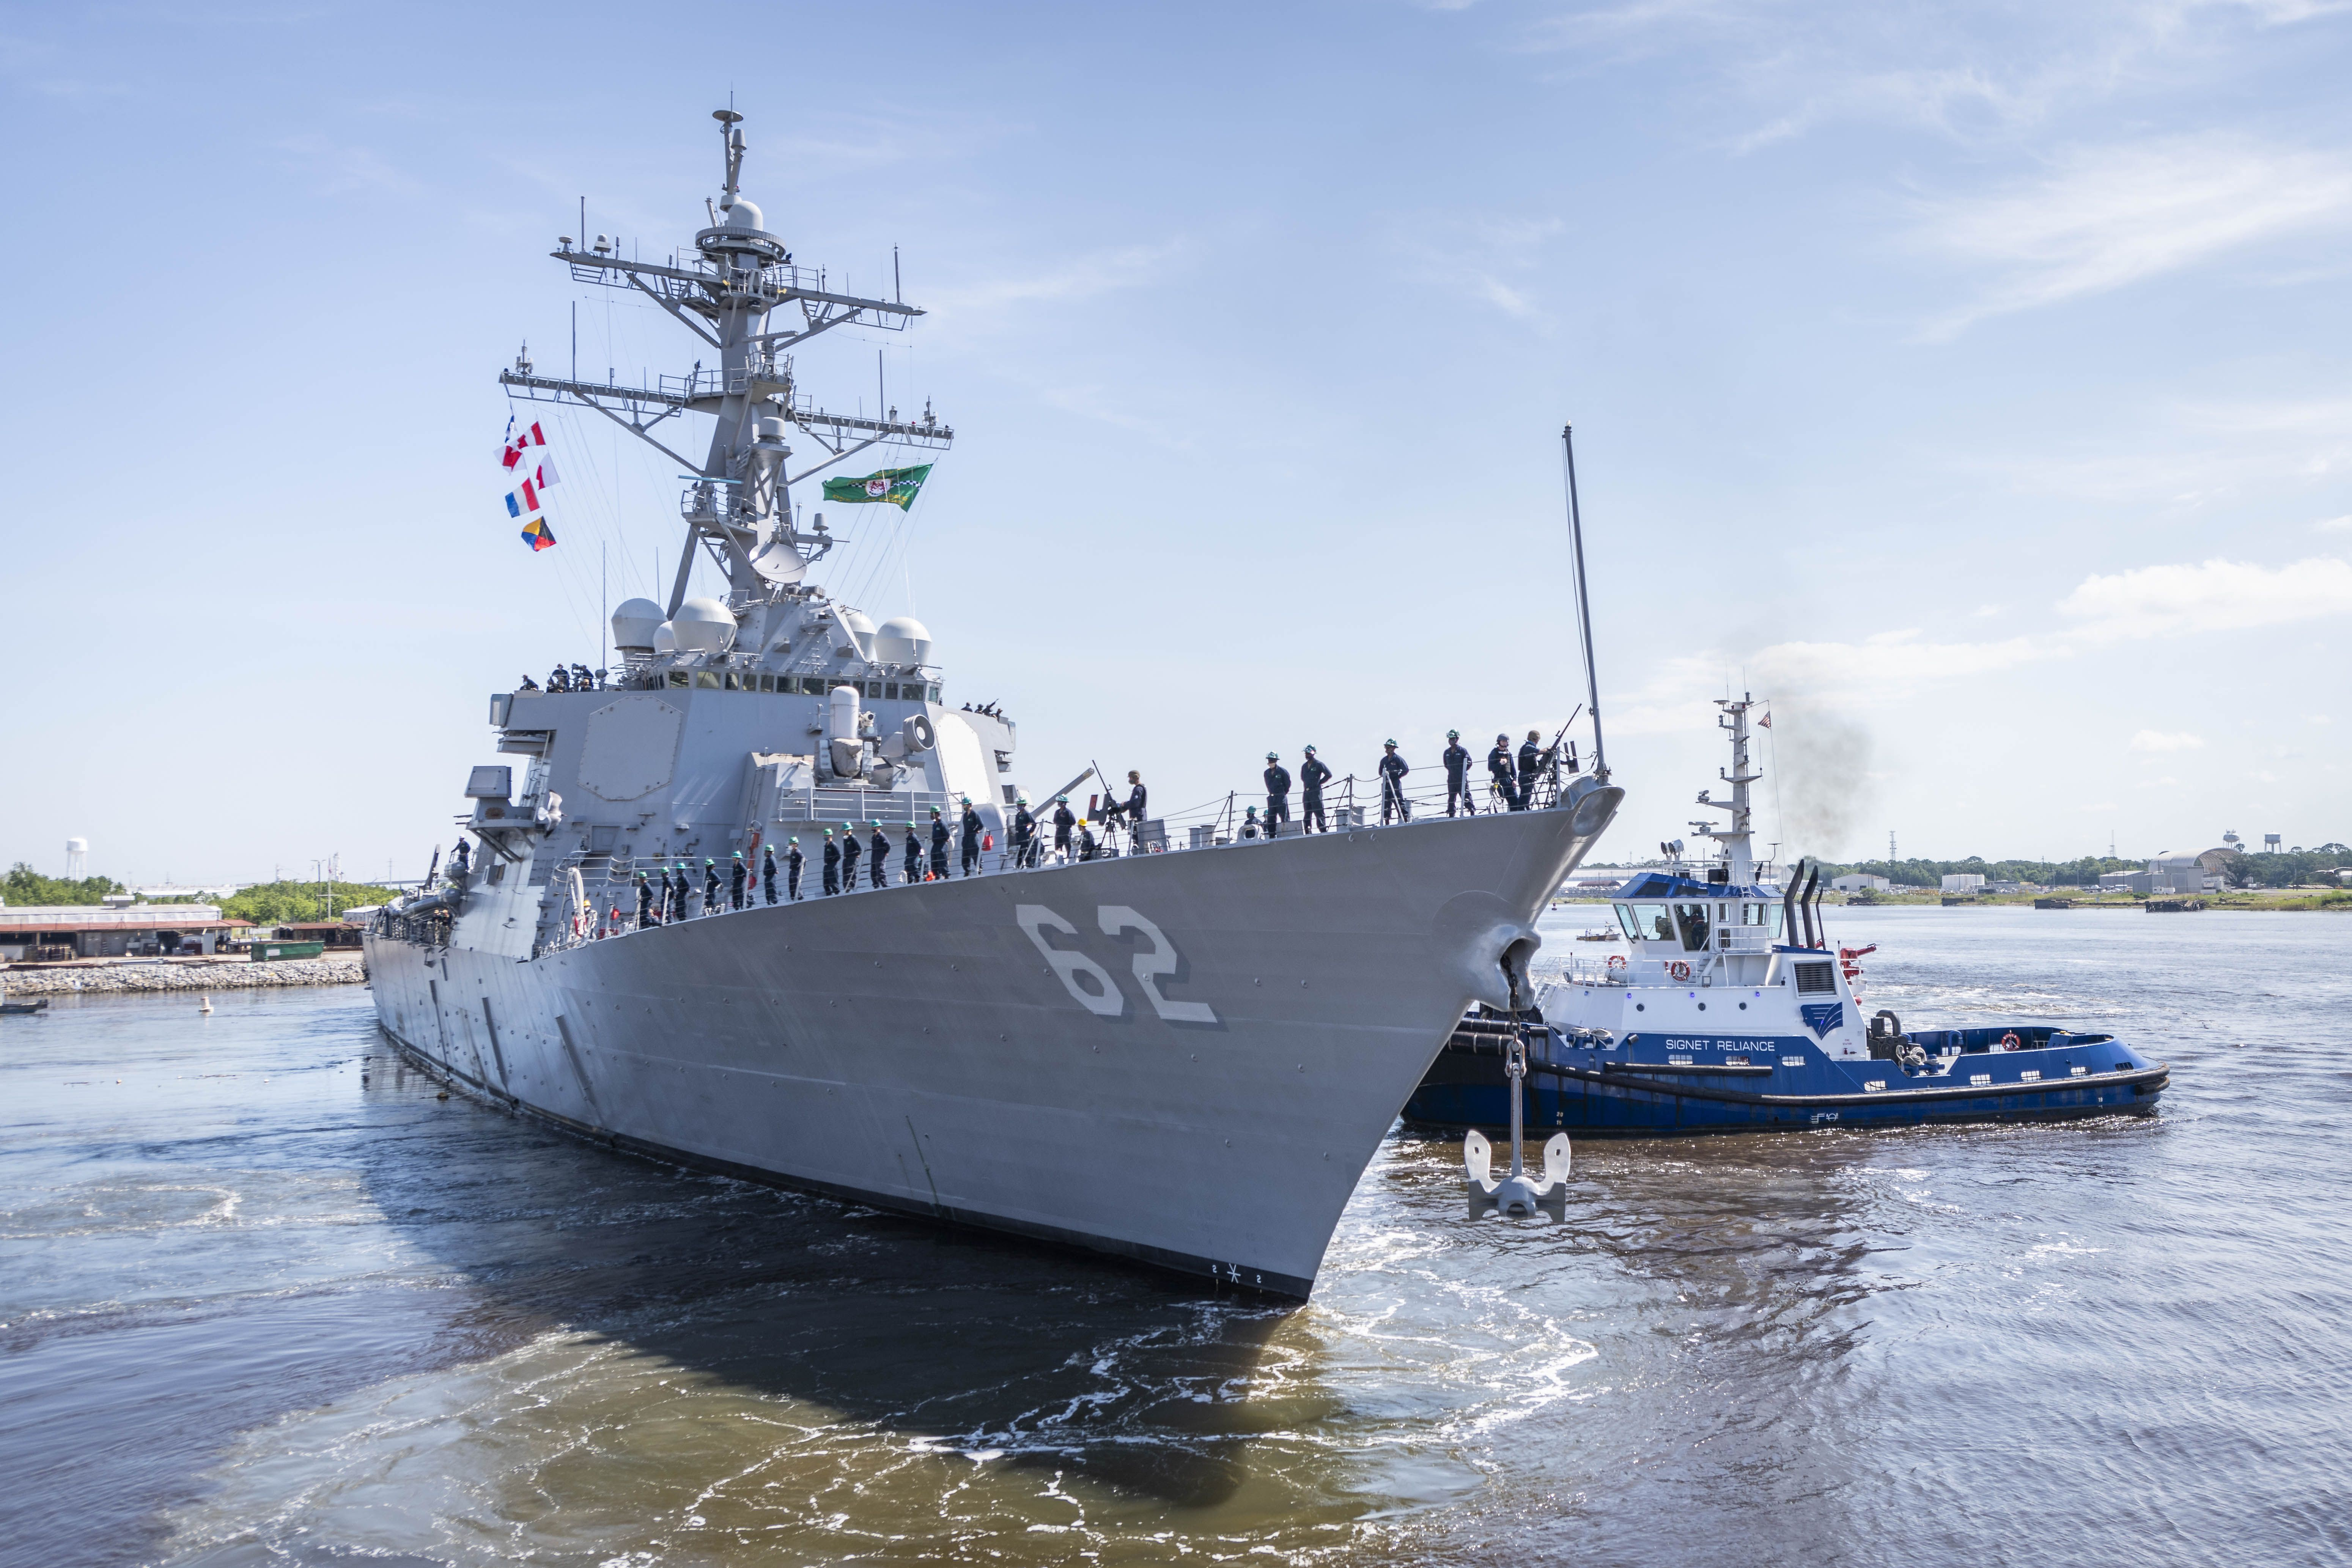 Uss Fitzgerald Leaves Ingalls Shipbuilding For New Homeport In San Diego 3 Years After Fatal Collision Usni News